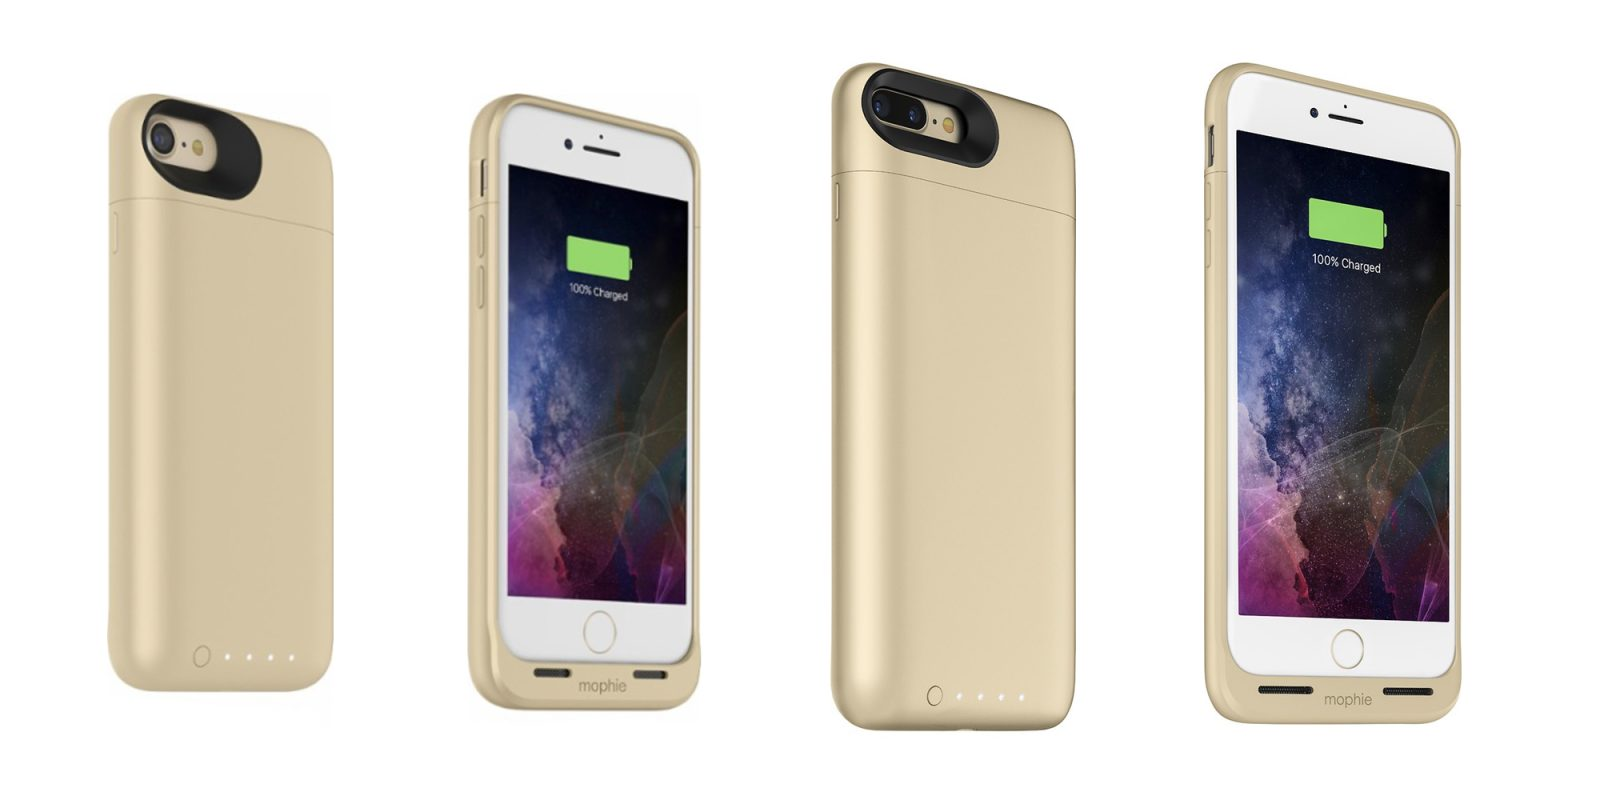 new arrival e6cda 12265 Mophie Juice Pack Battery for iPhone 7/Plus for $50 shipped (Reg ...